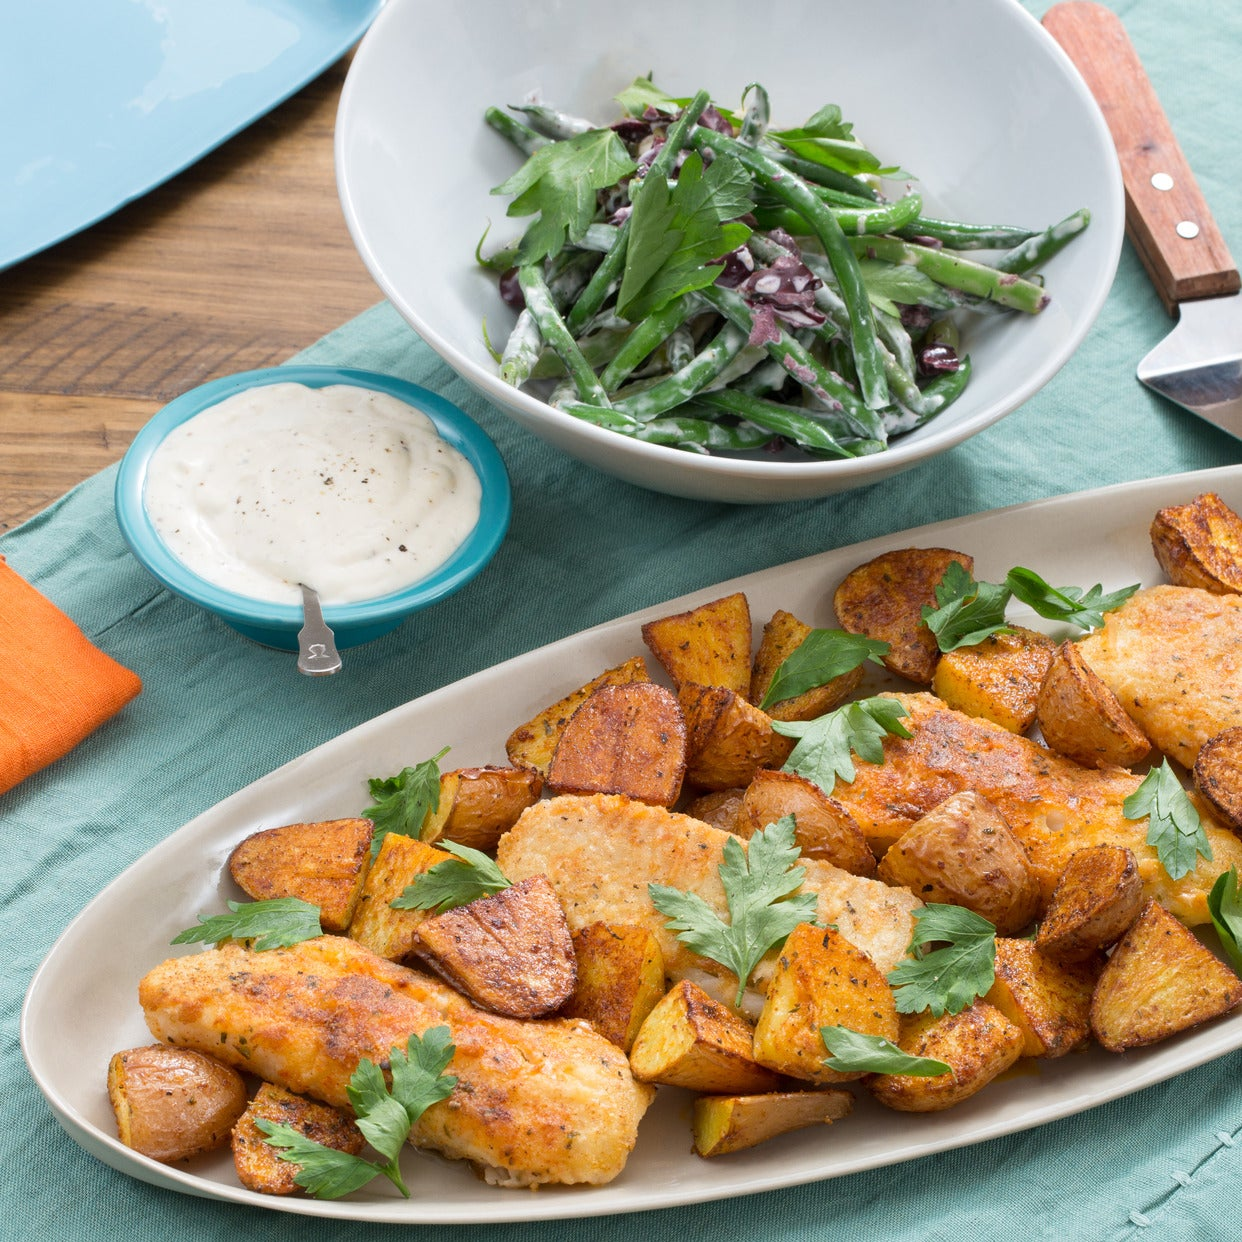 Crispy Catfish & Roasted Potatoes with Summer Bean Salad & Garlic-Lemon Aioli